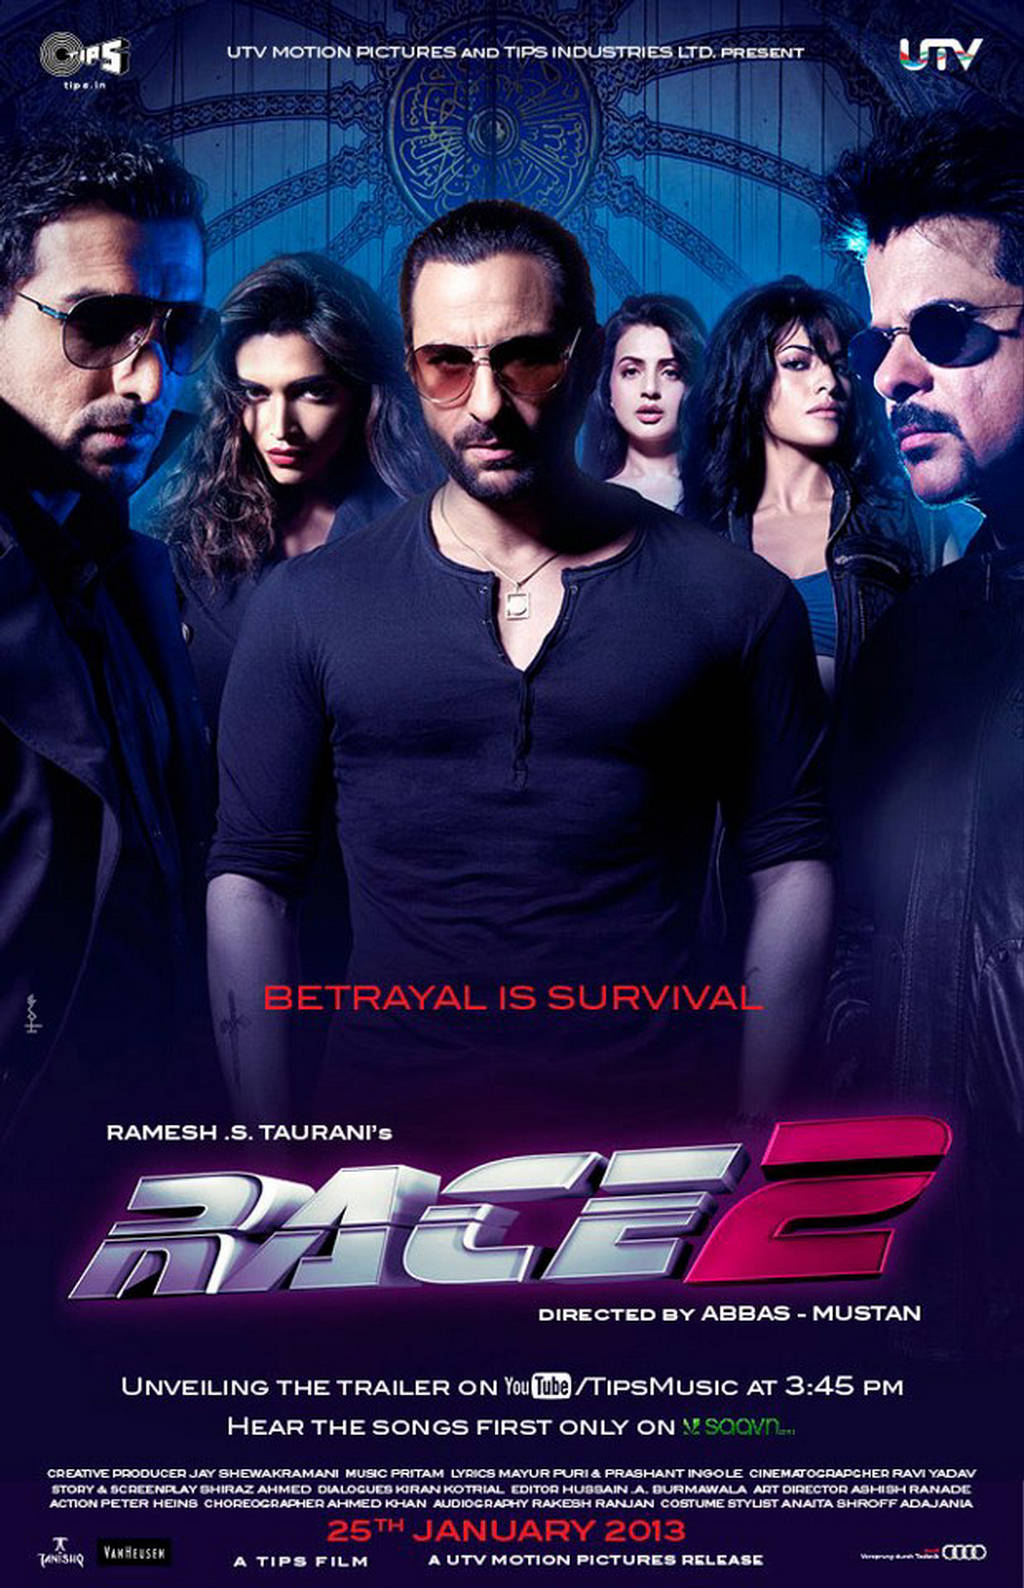 Race 2 Movie [2013] - Theatrical Trailer - XciteFun.net Race 2